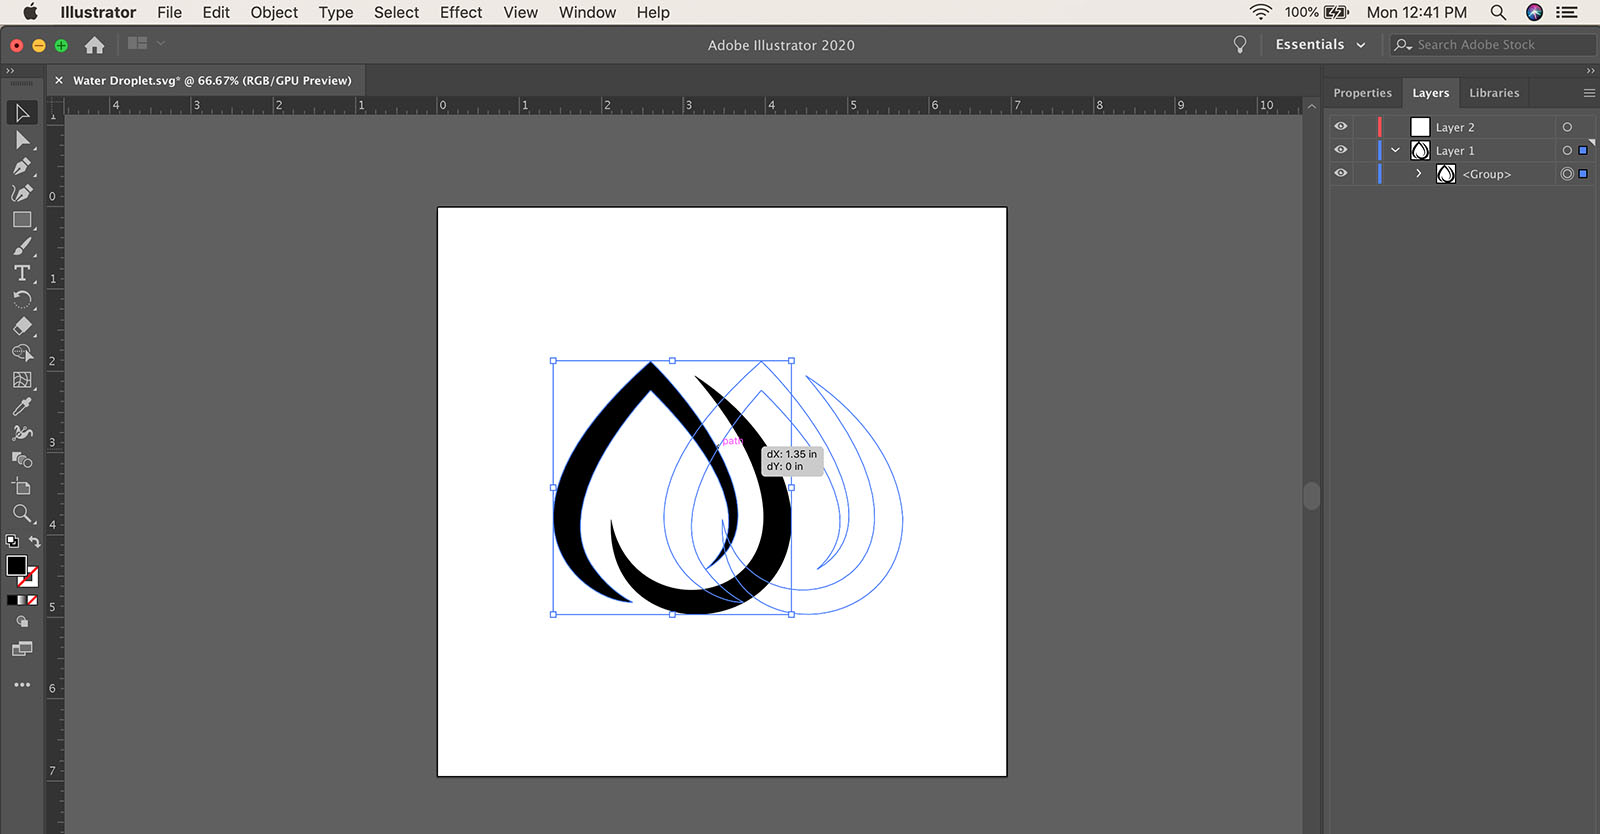 How to duplicate or copy an object in Illustrator